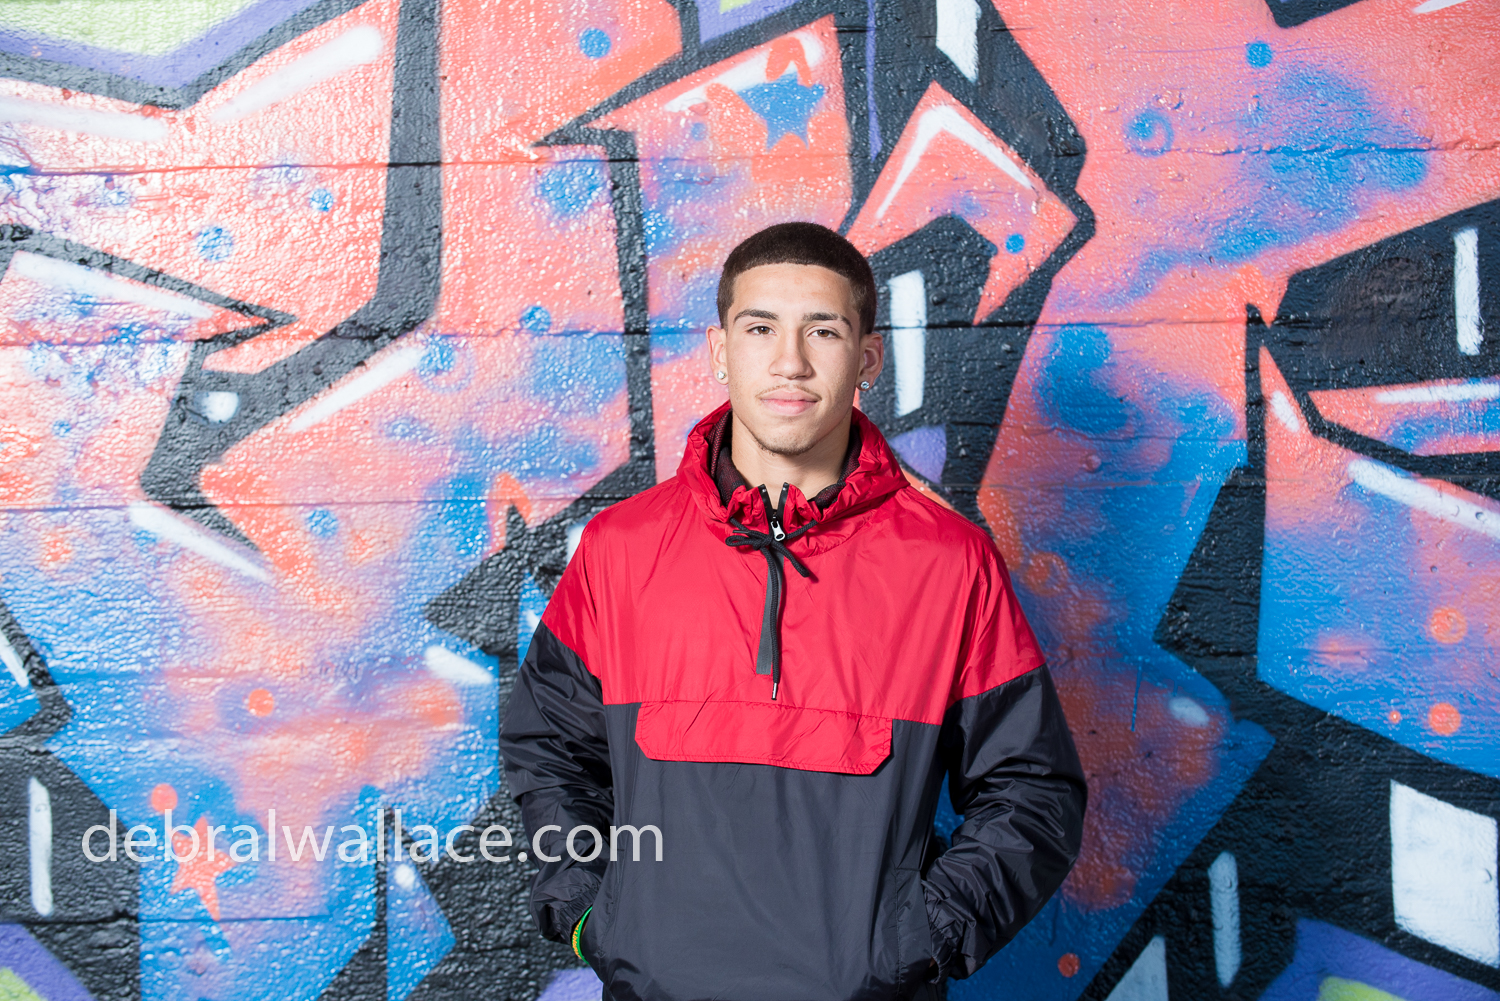 Rochester Subway Tunnel Senior Portrait Photography